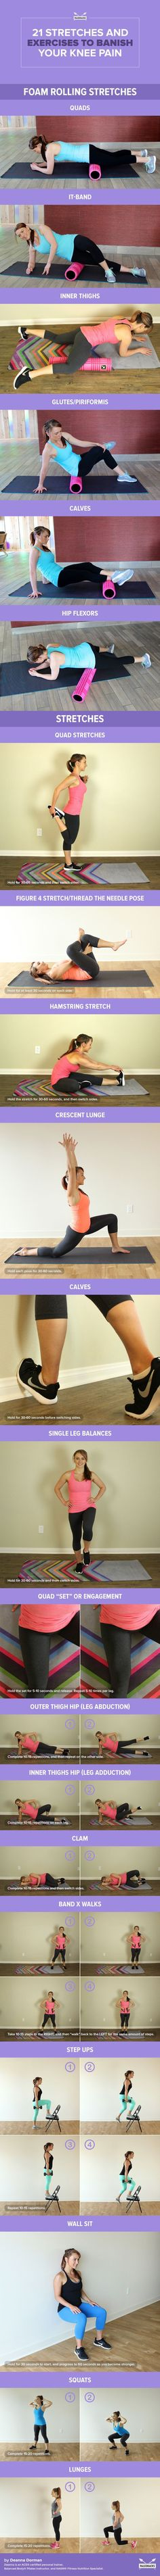 21_Stretches_and_Exercises_to_Banish_Your_Knee_Pain-infog.jpg